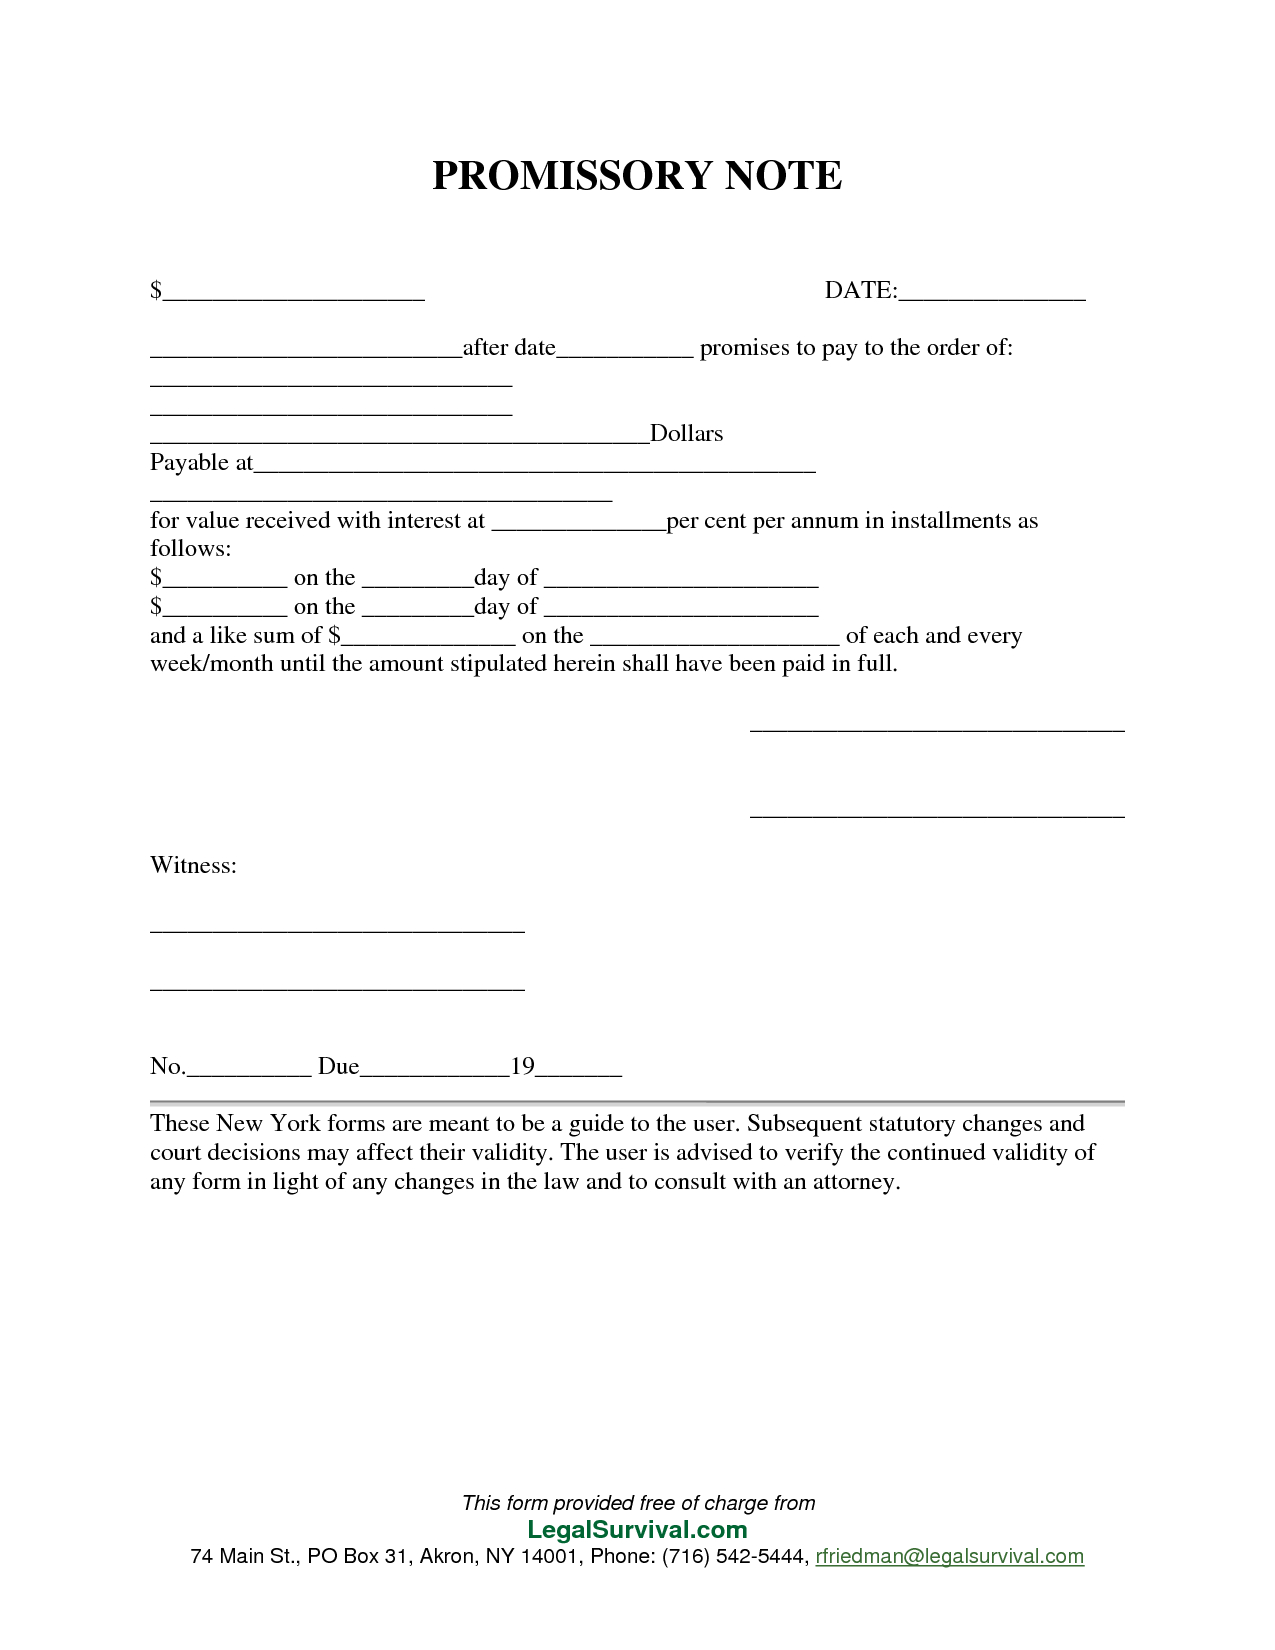 Permalink To Free Promissory Note Template … … | Templates | Pinte… - Free Printable Promissory Note Template